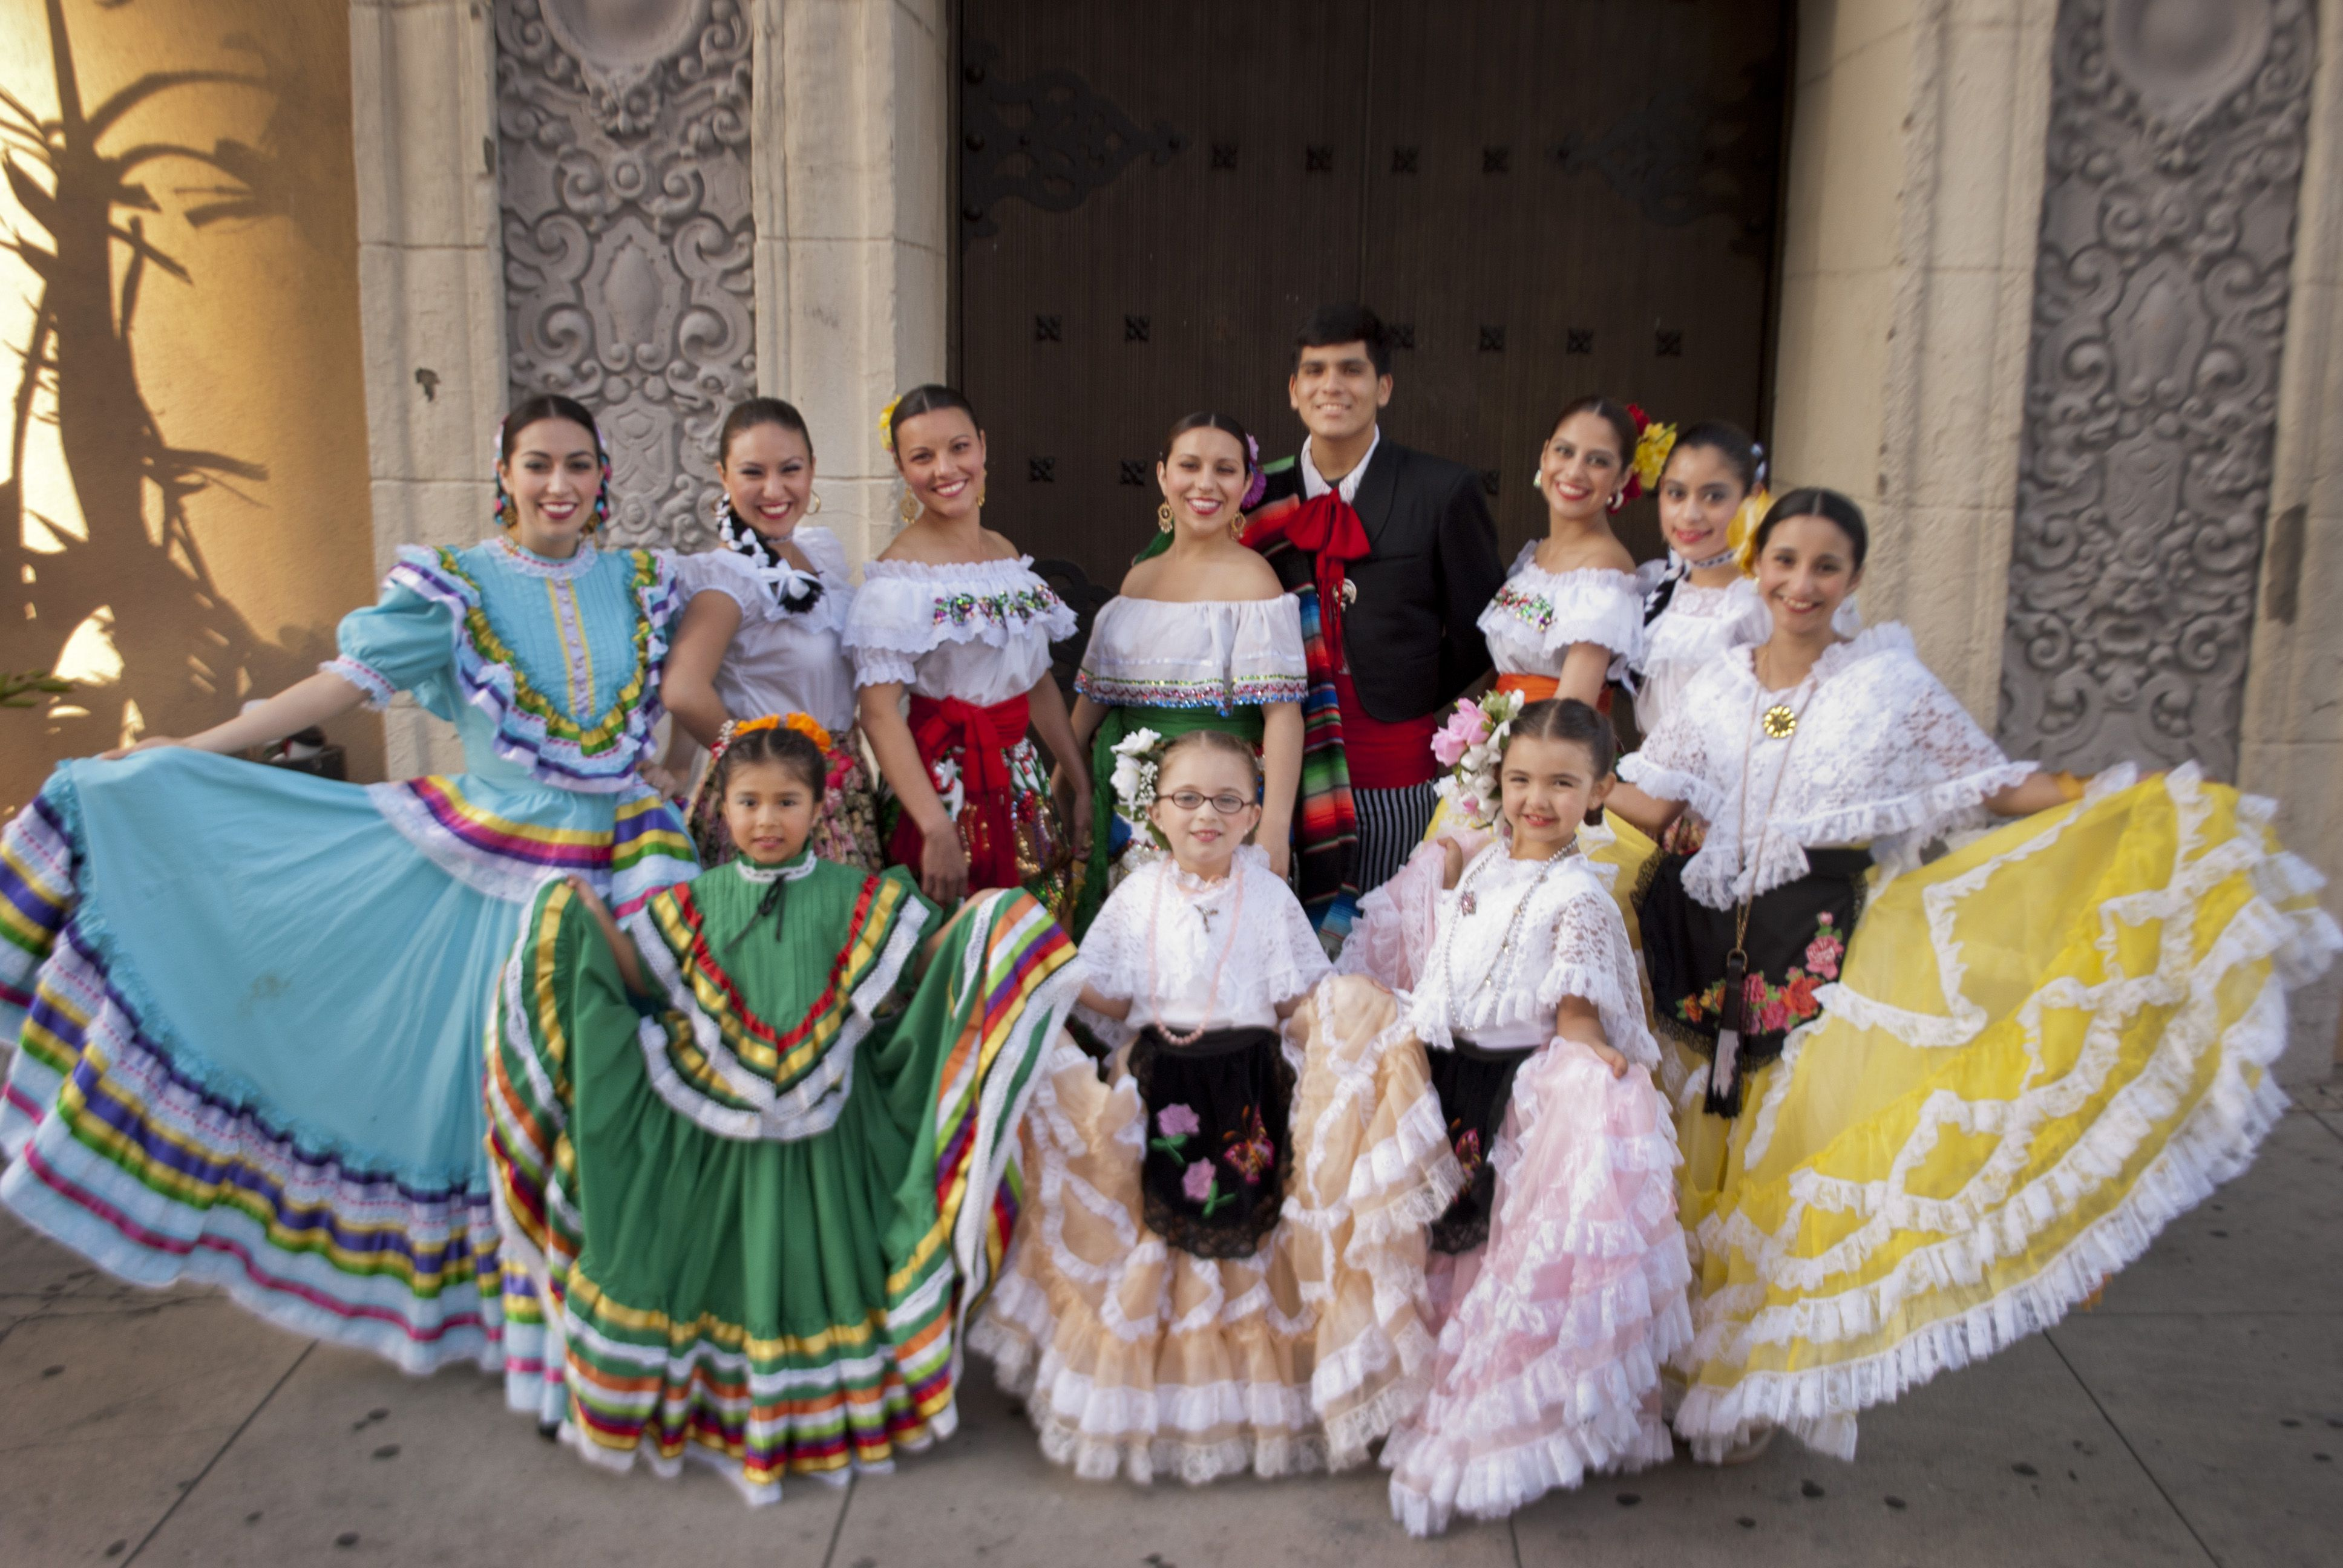 Ballet Folklorico De Los Angeles Performing Every Friday And Saturday Offering Dance Classes Every Sunday Chil Ballet Folklorico Sundays Child La Fonda